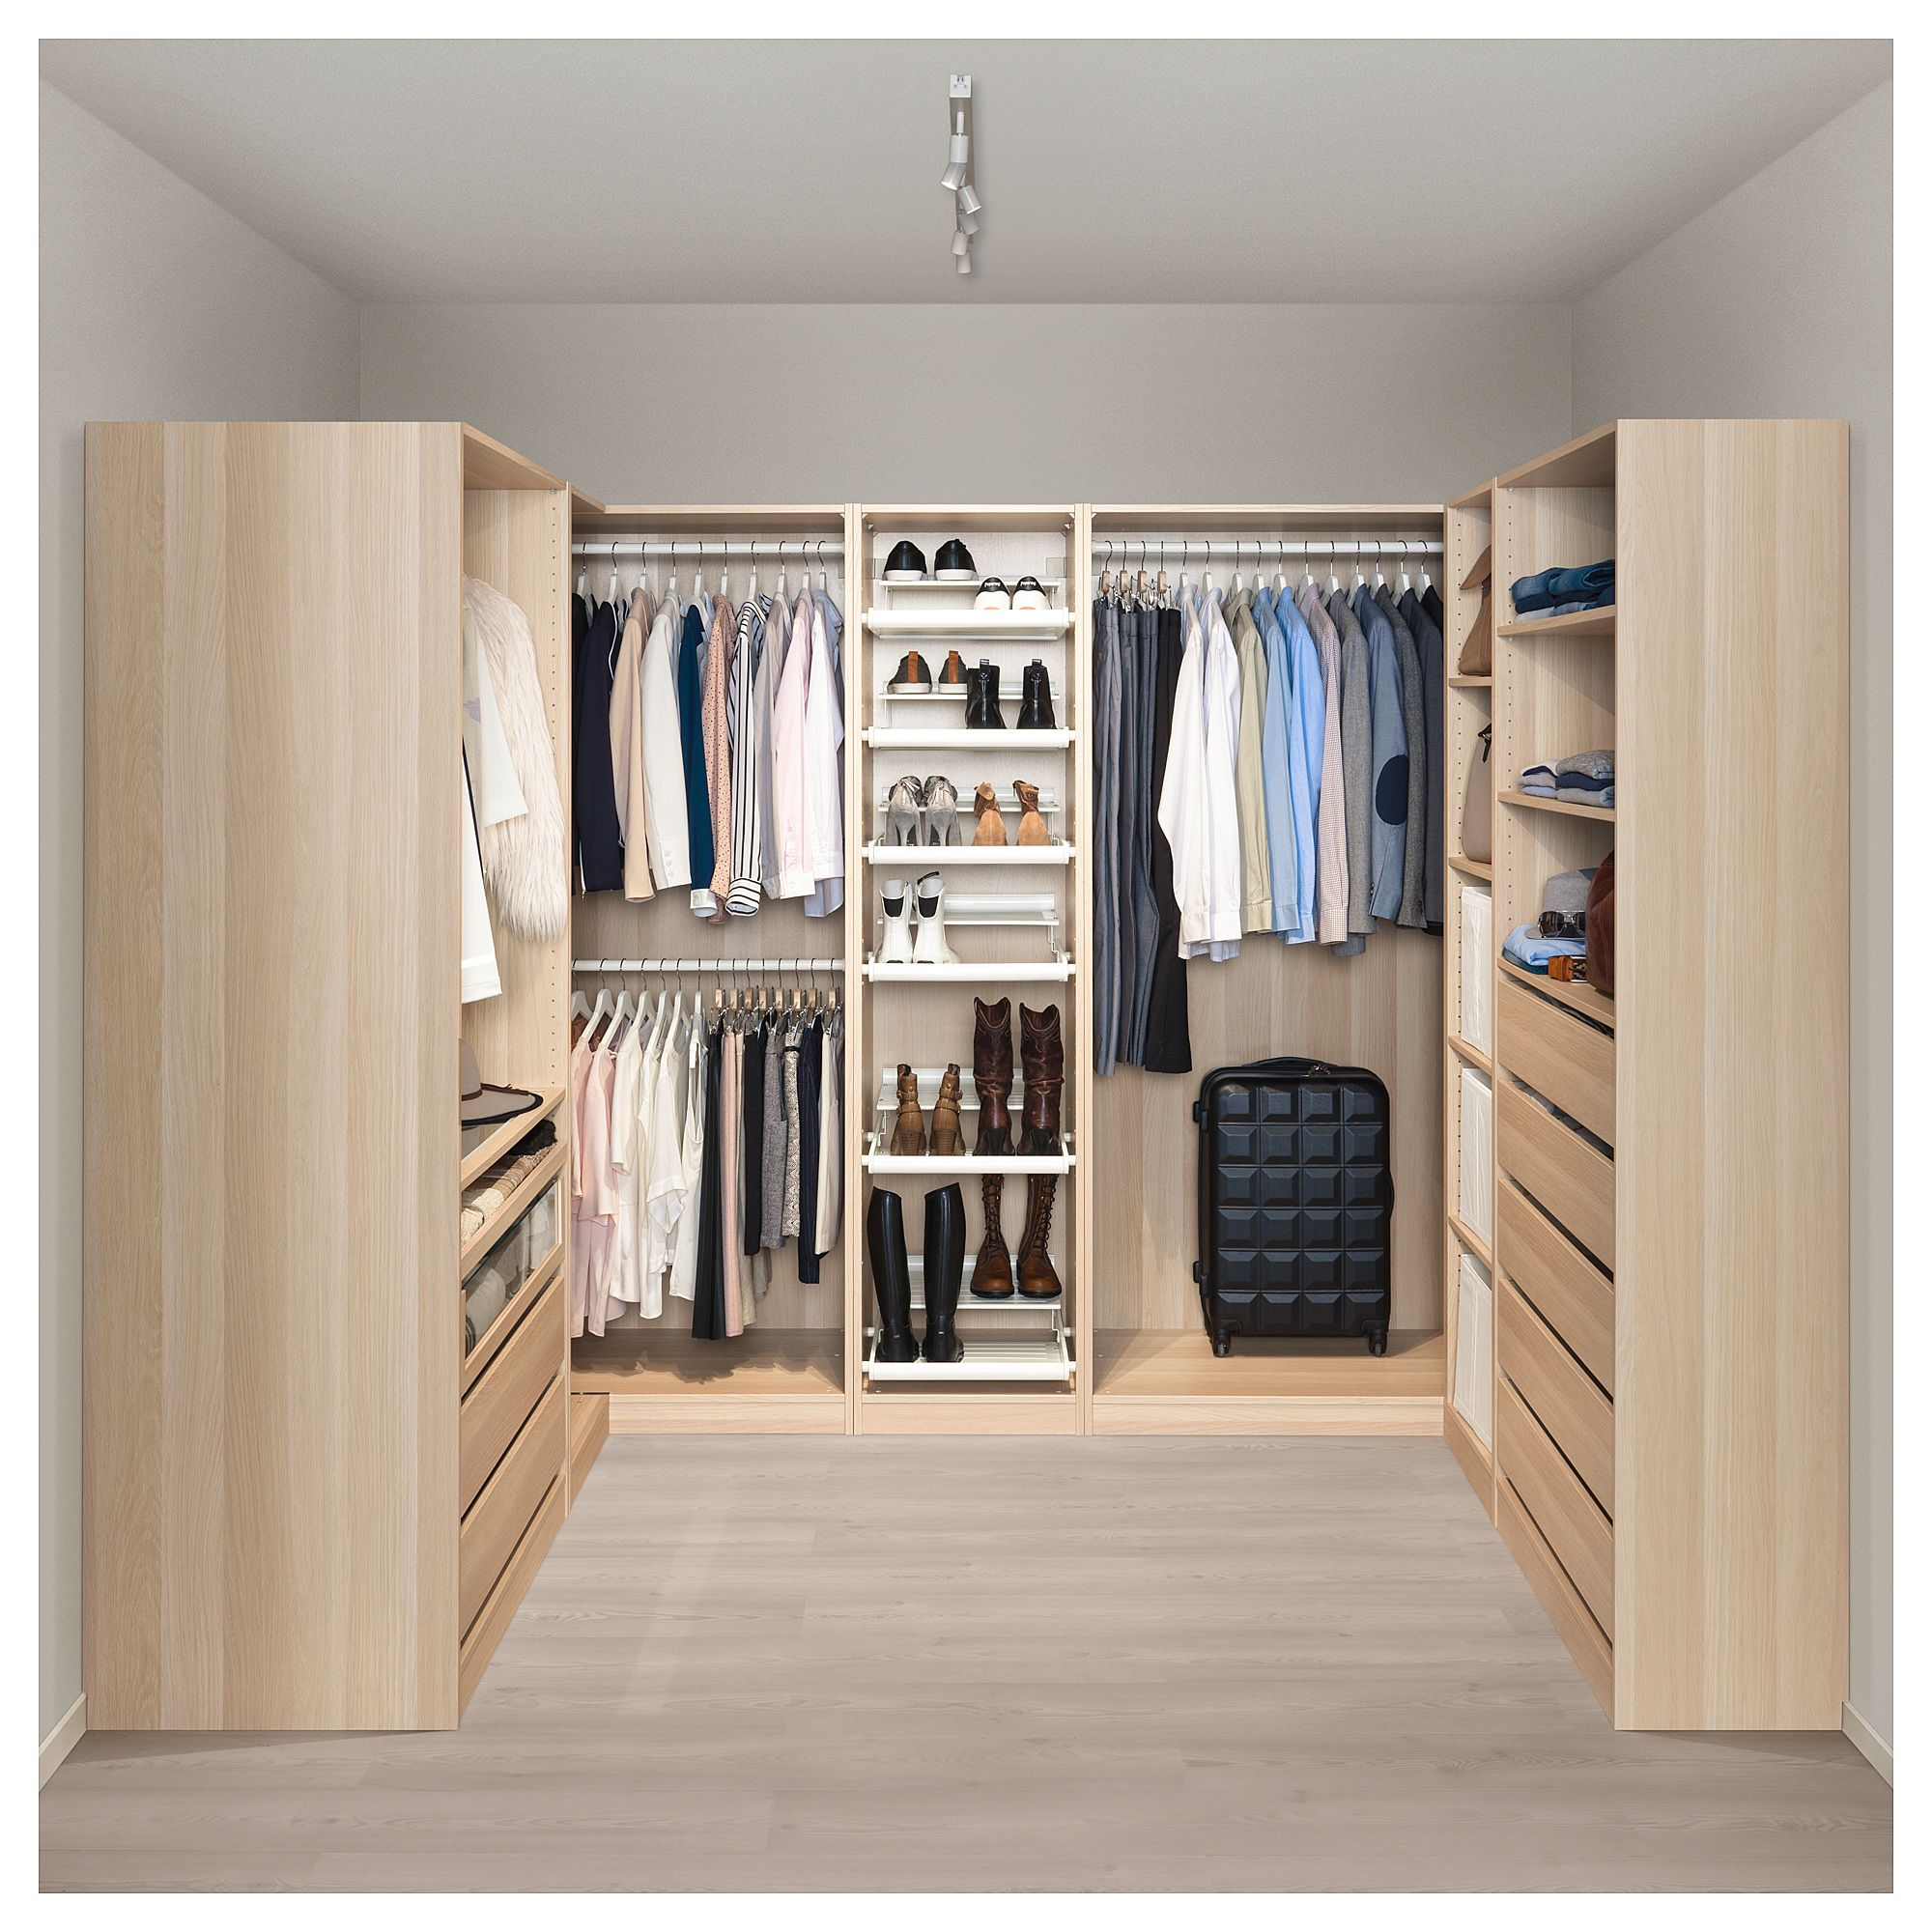 and home dazzling wardrobe master bedroom photo closet space gallery amazing for inspiring idea storage walkin decor with designs furnitures maximum of also furniture corner